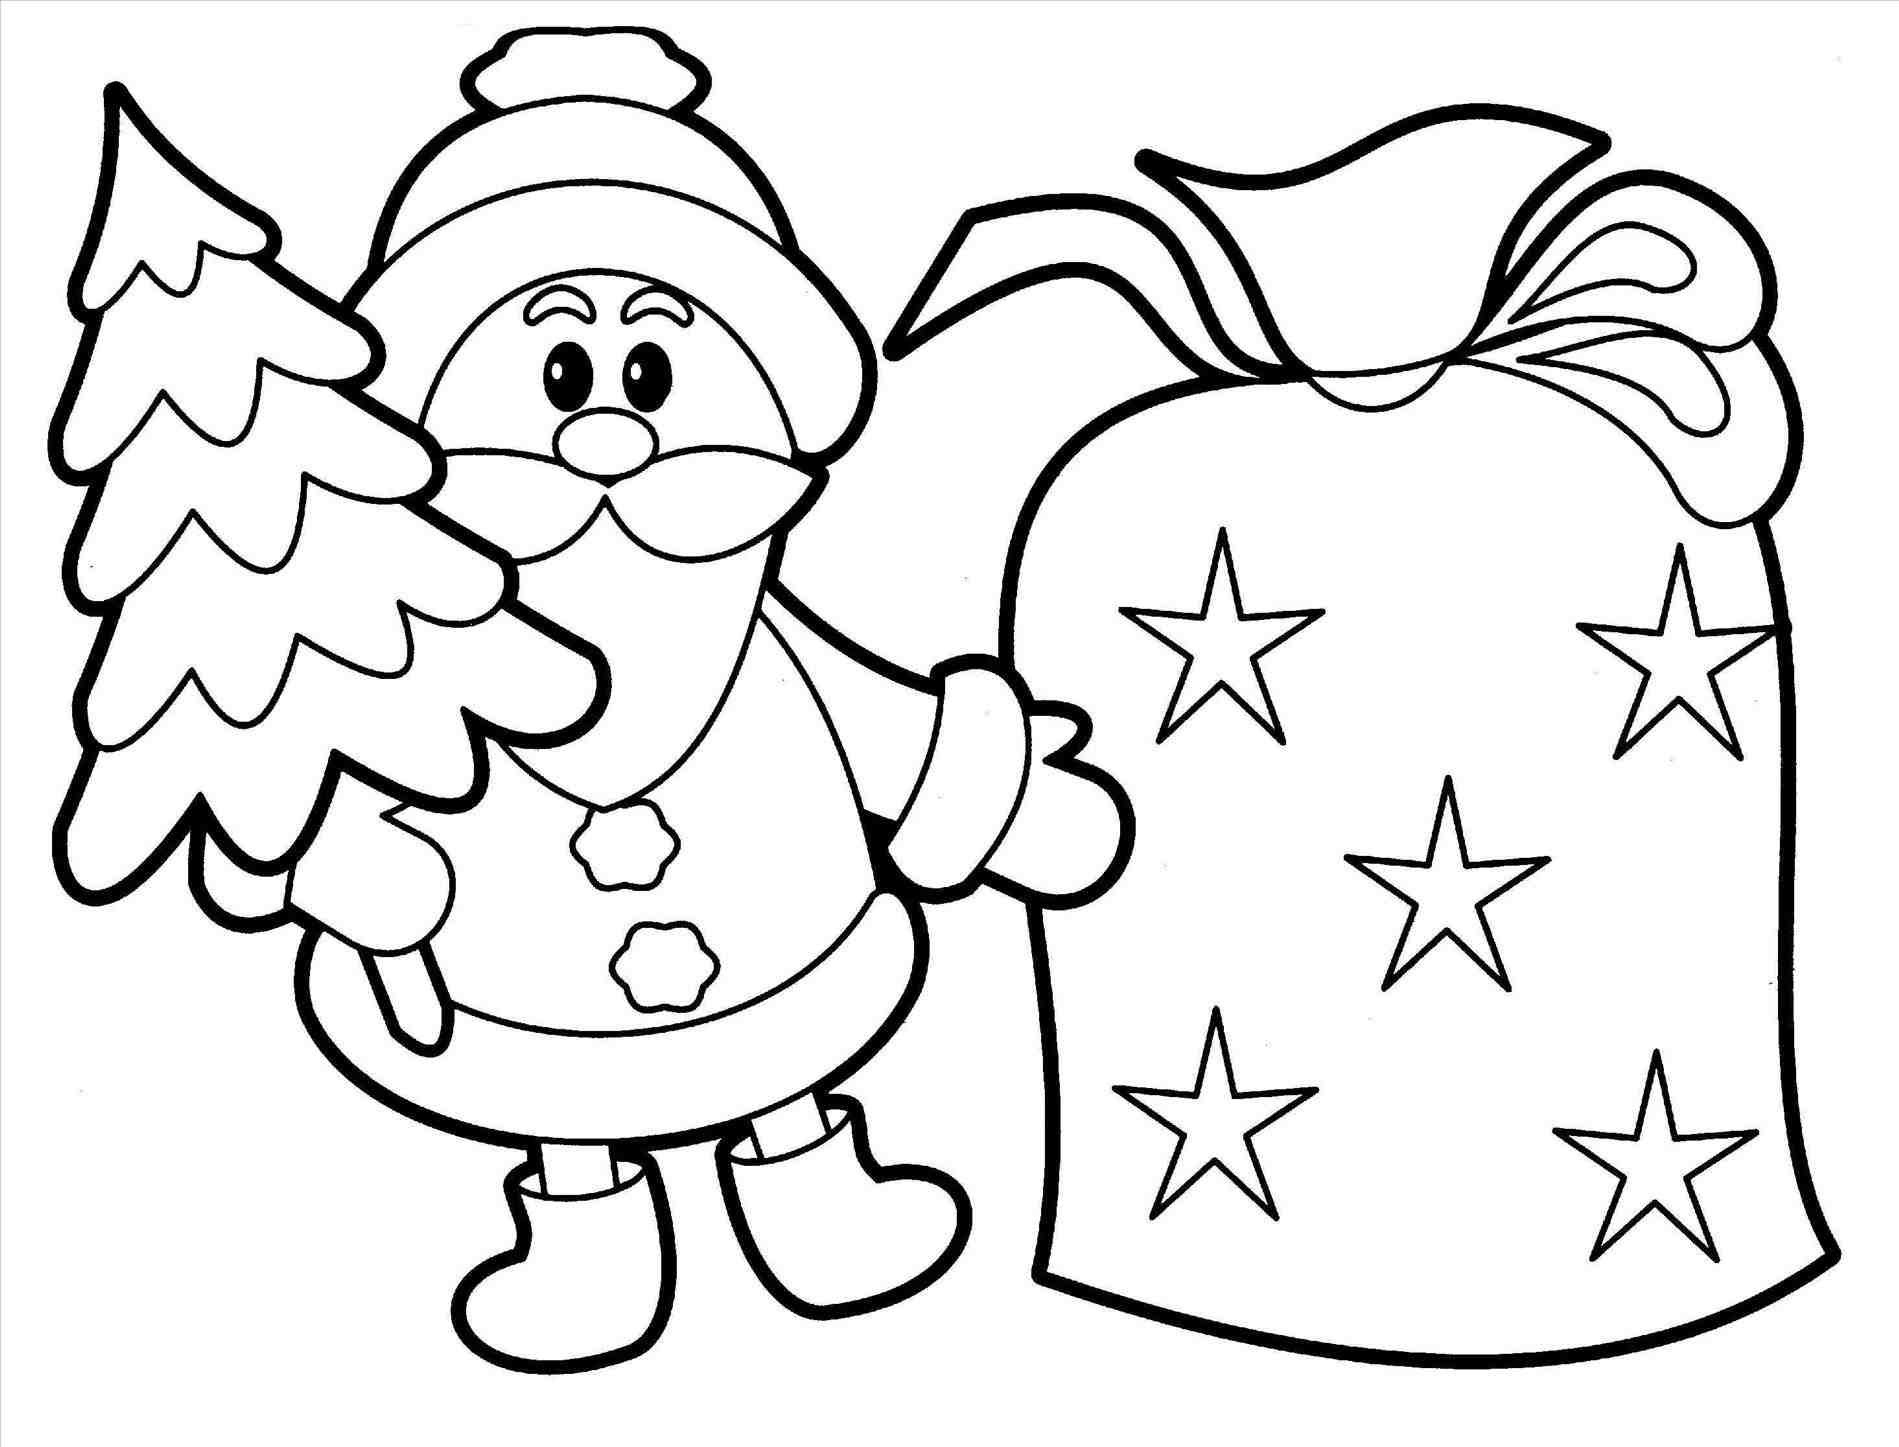 Easy Christmas Drawing For Kids At Getdrawings Com Free For